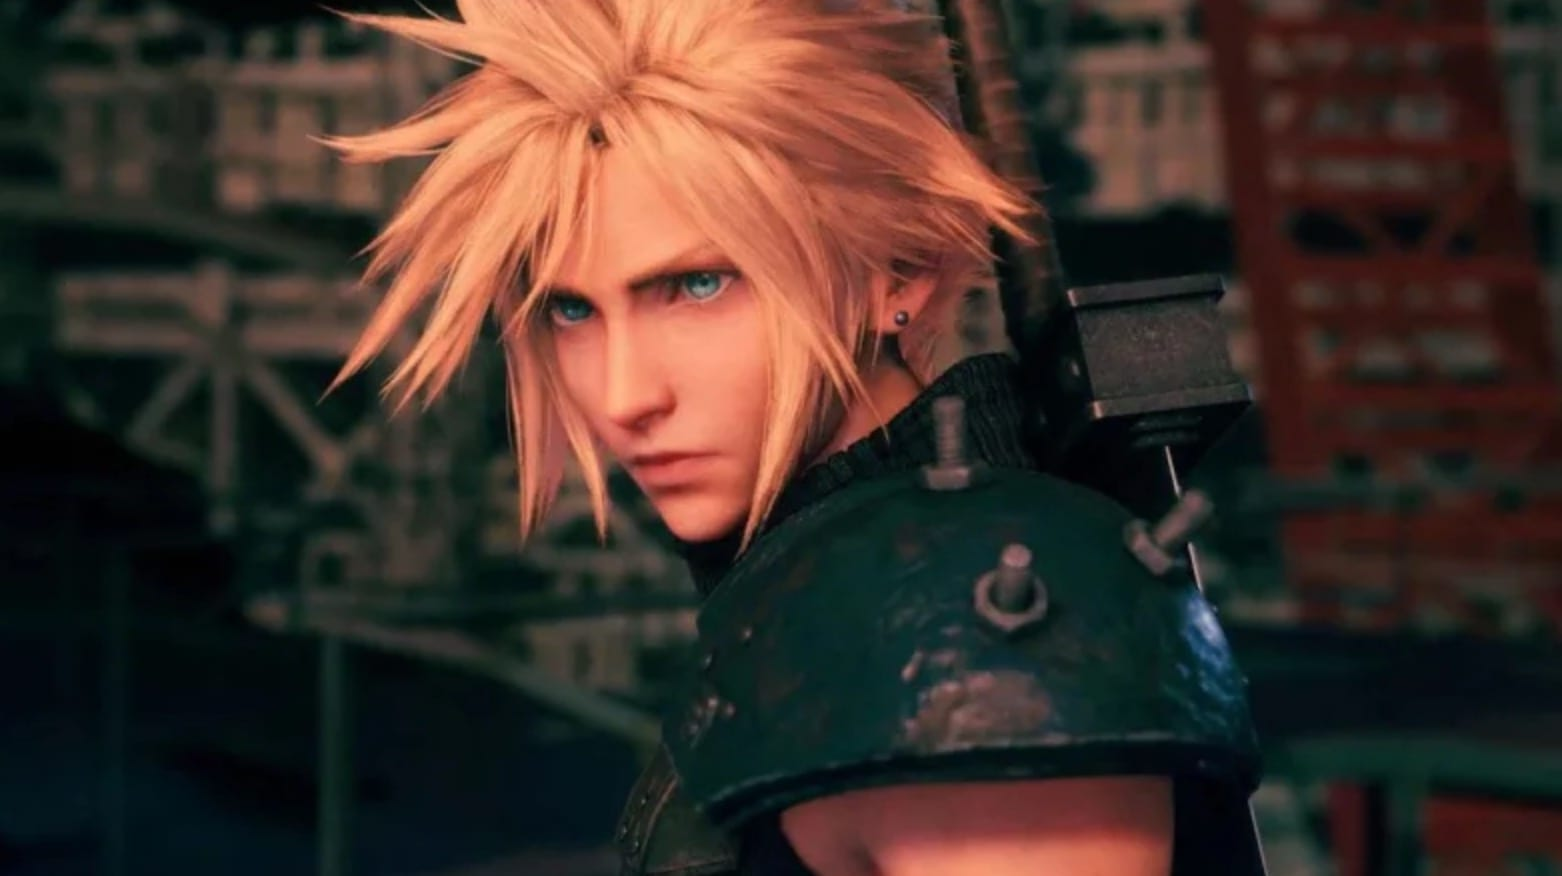 final fantasy 7 remake preload and unlock times